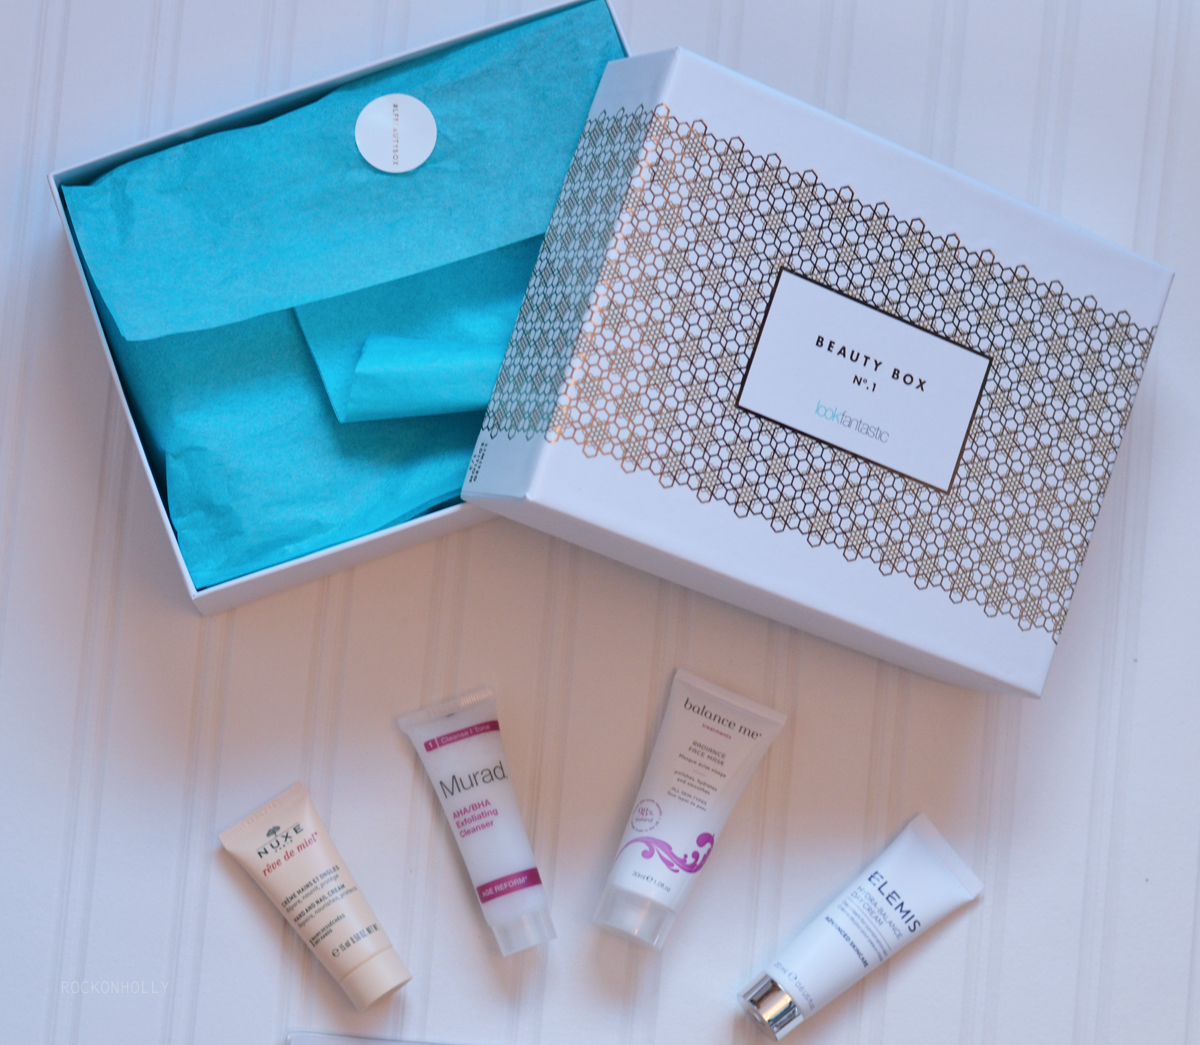 Look Fantastic Beauty Box Review and Giveaway on Rock On Holly